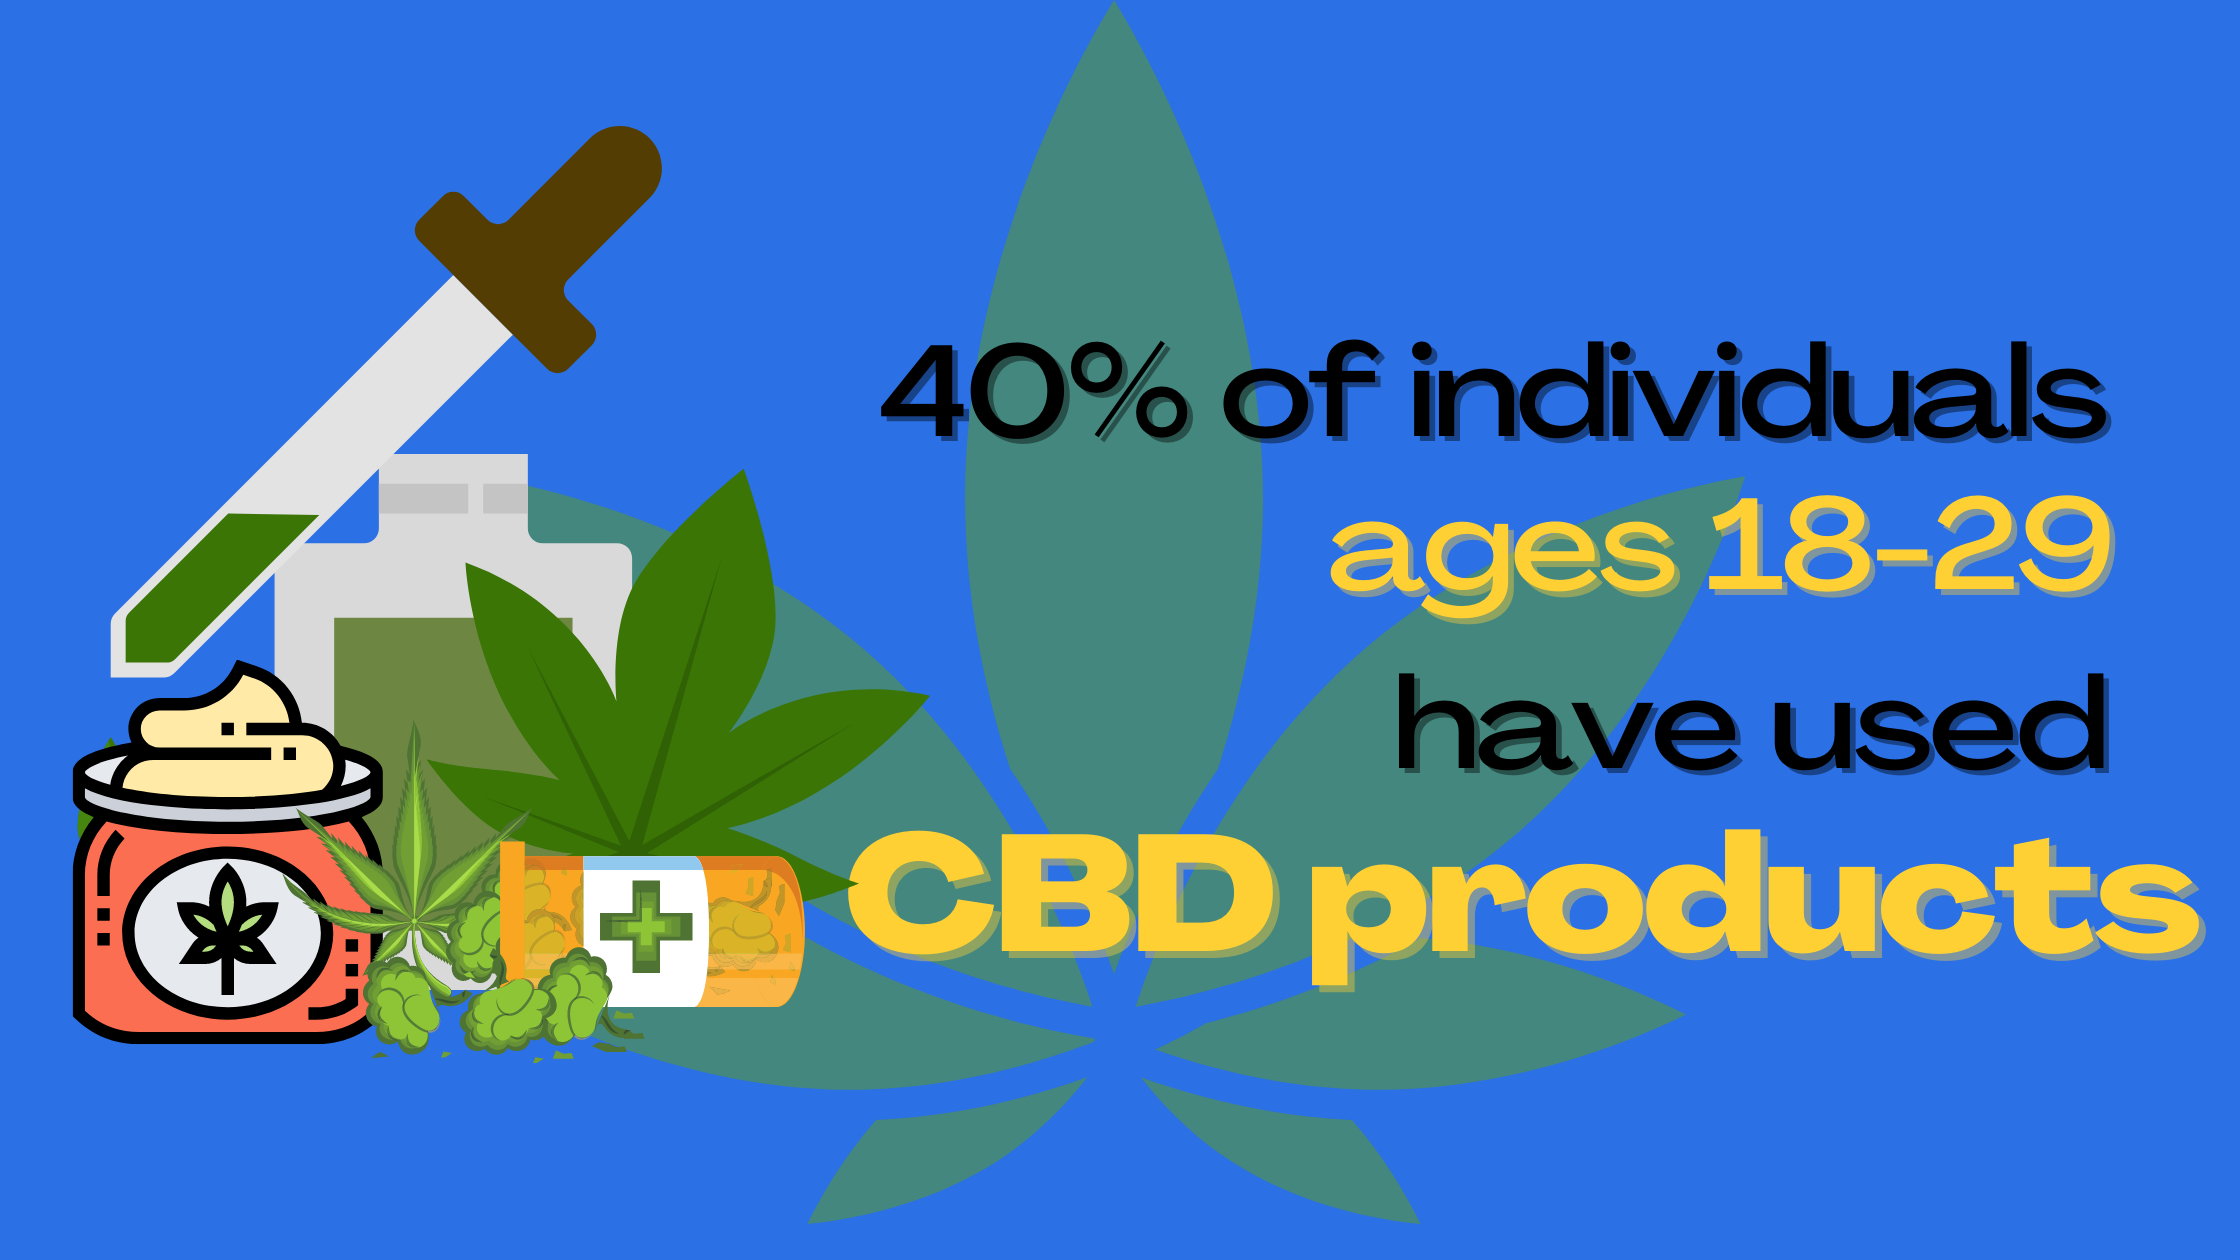 cbd-products-statistic